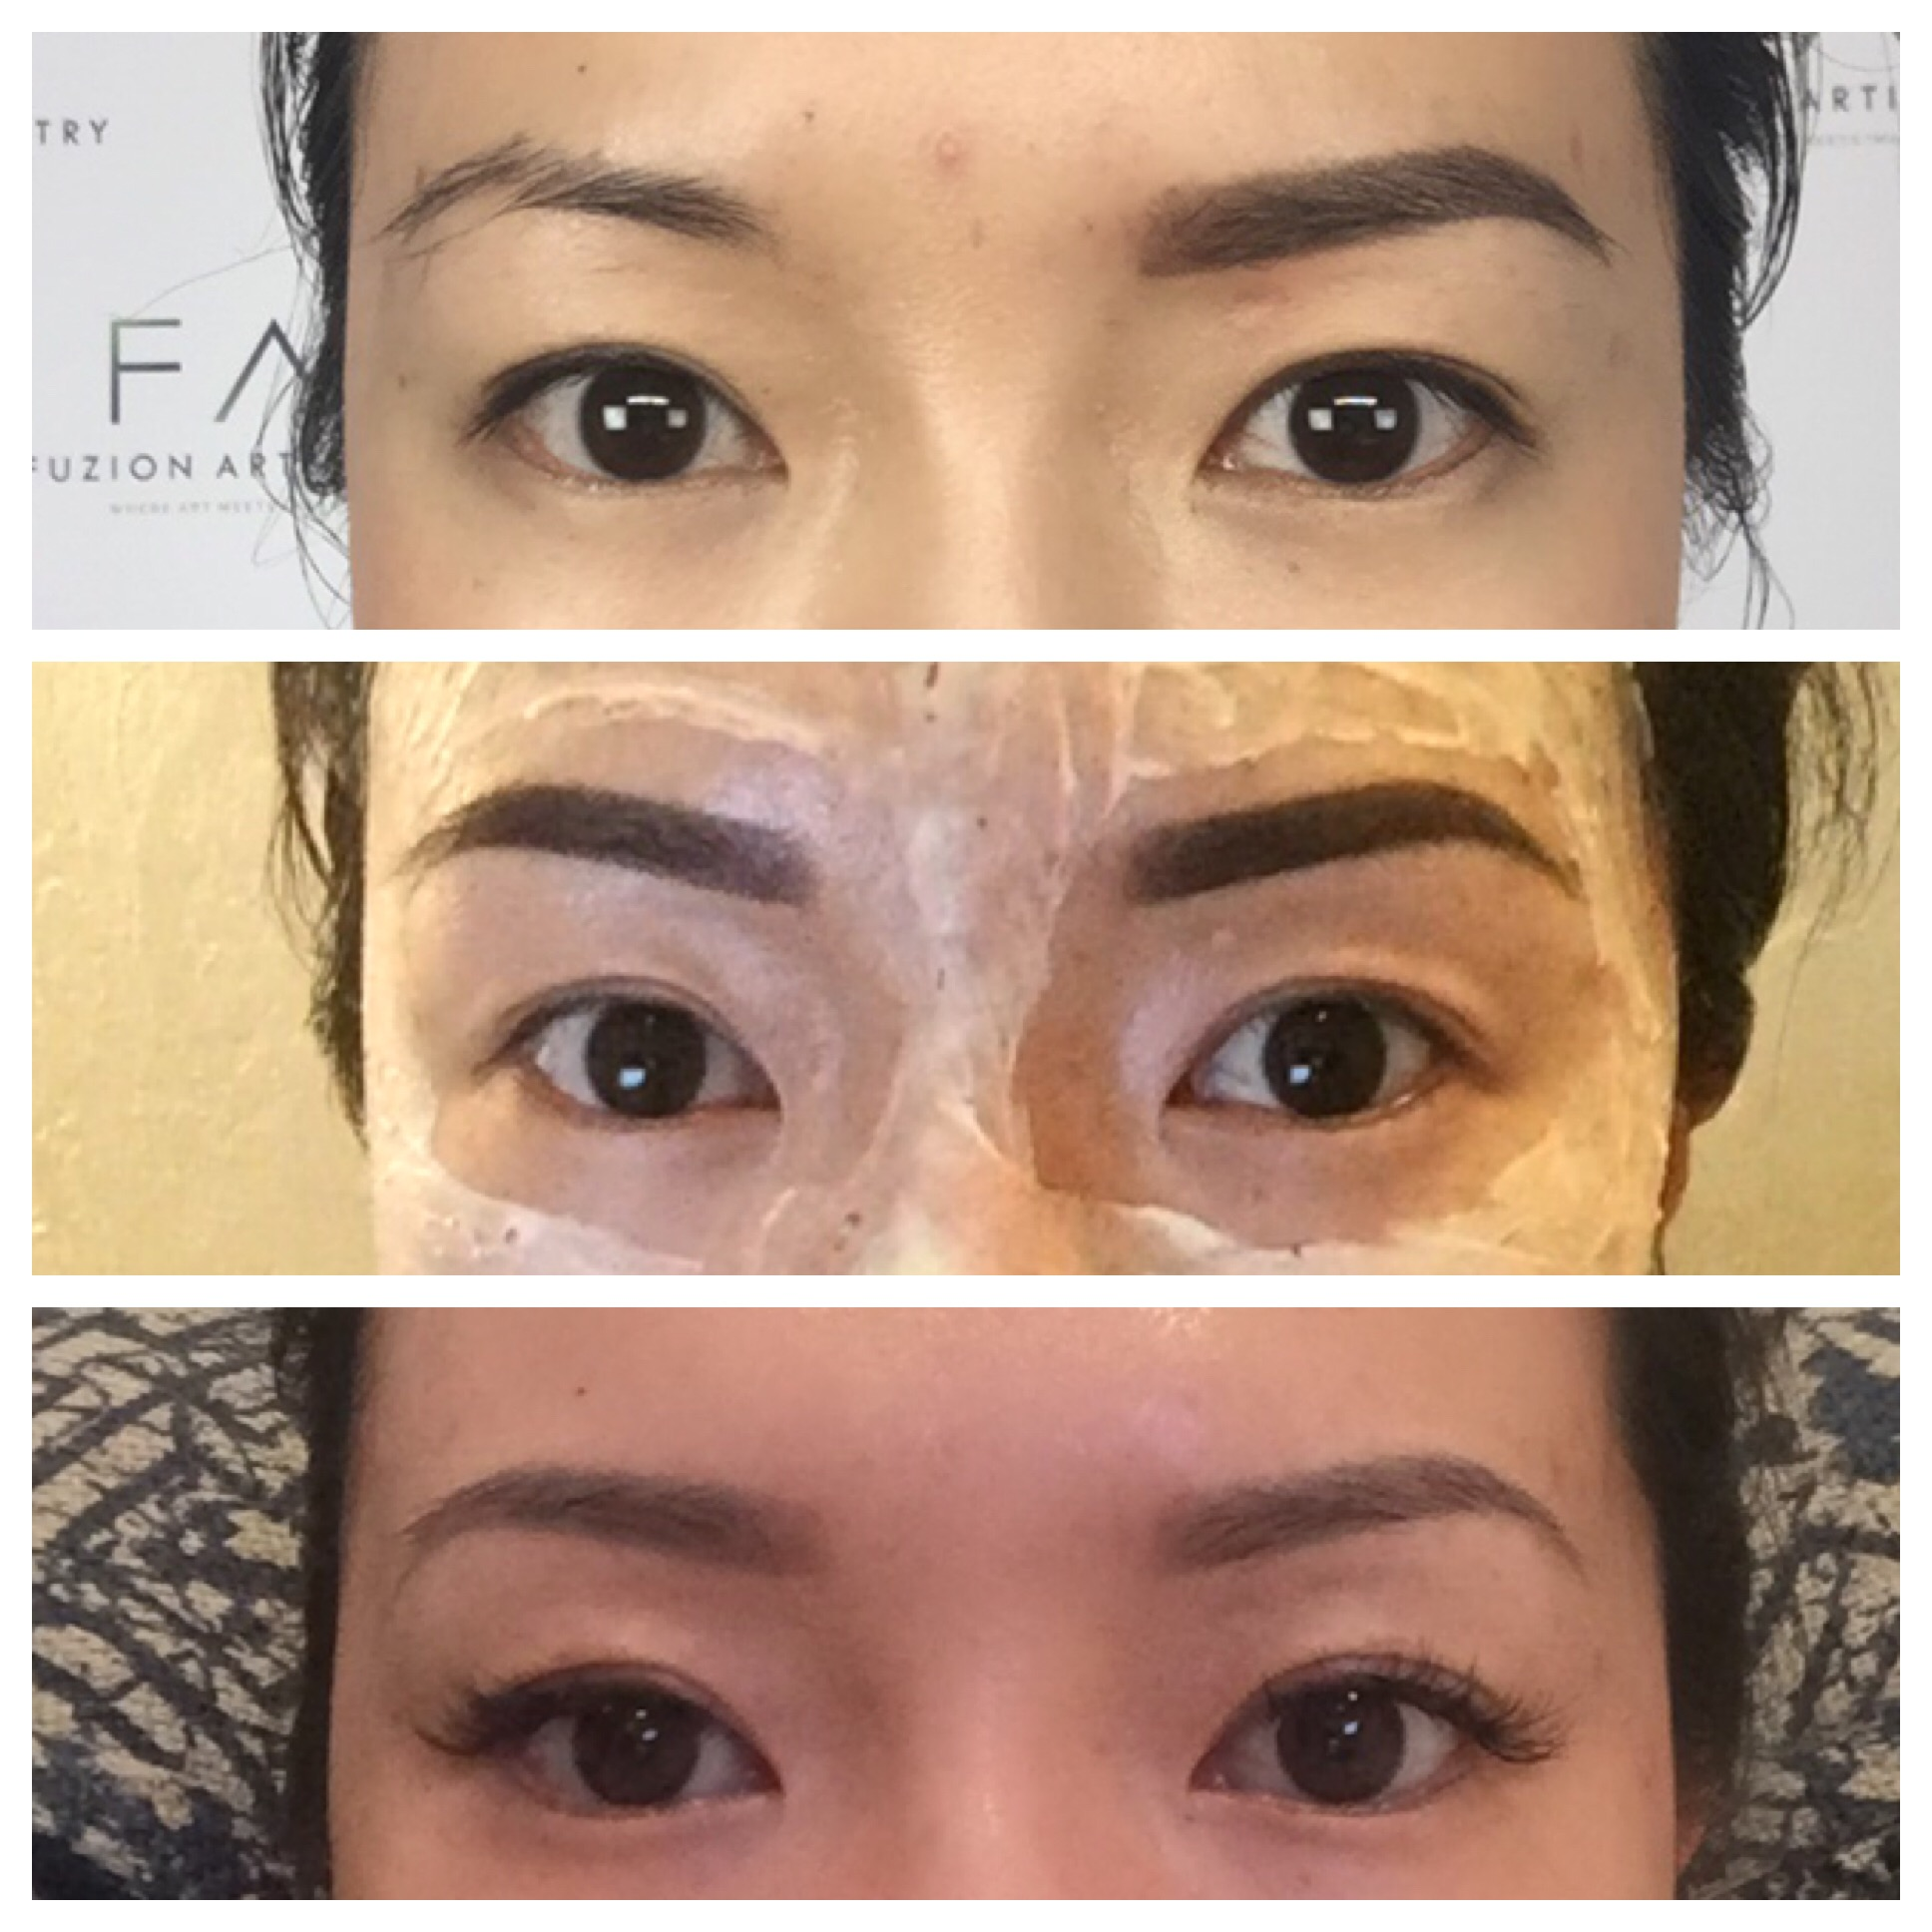 Eyebrow Tattoo Cost, Prep, Procedure - What You Should Know